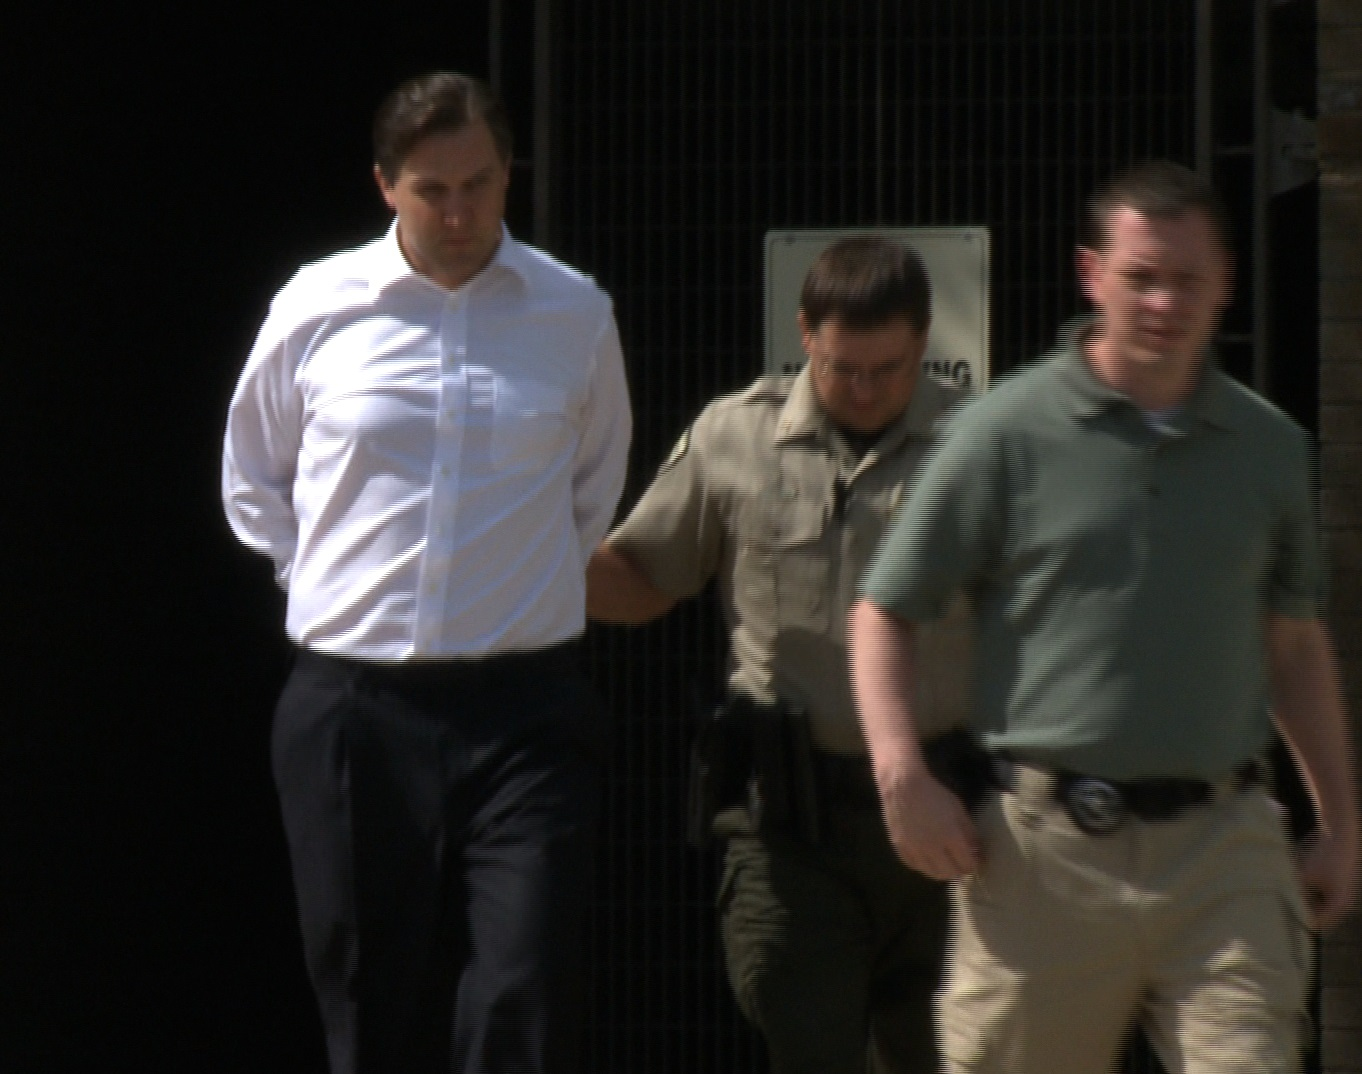 Barber being led away from federal court in handcuffs before being transferred to the Washington County Detention Center.